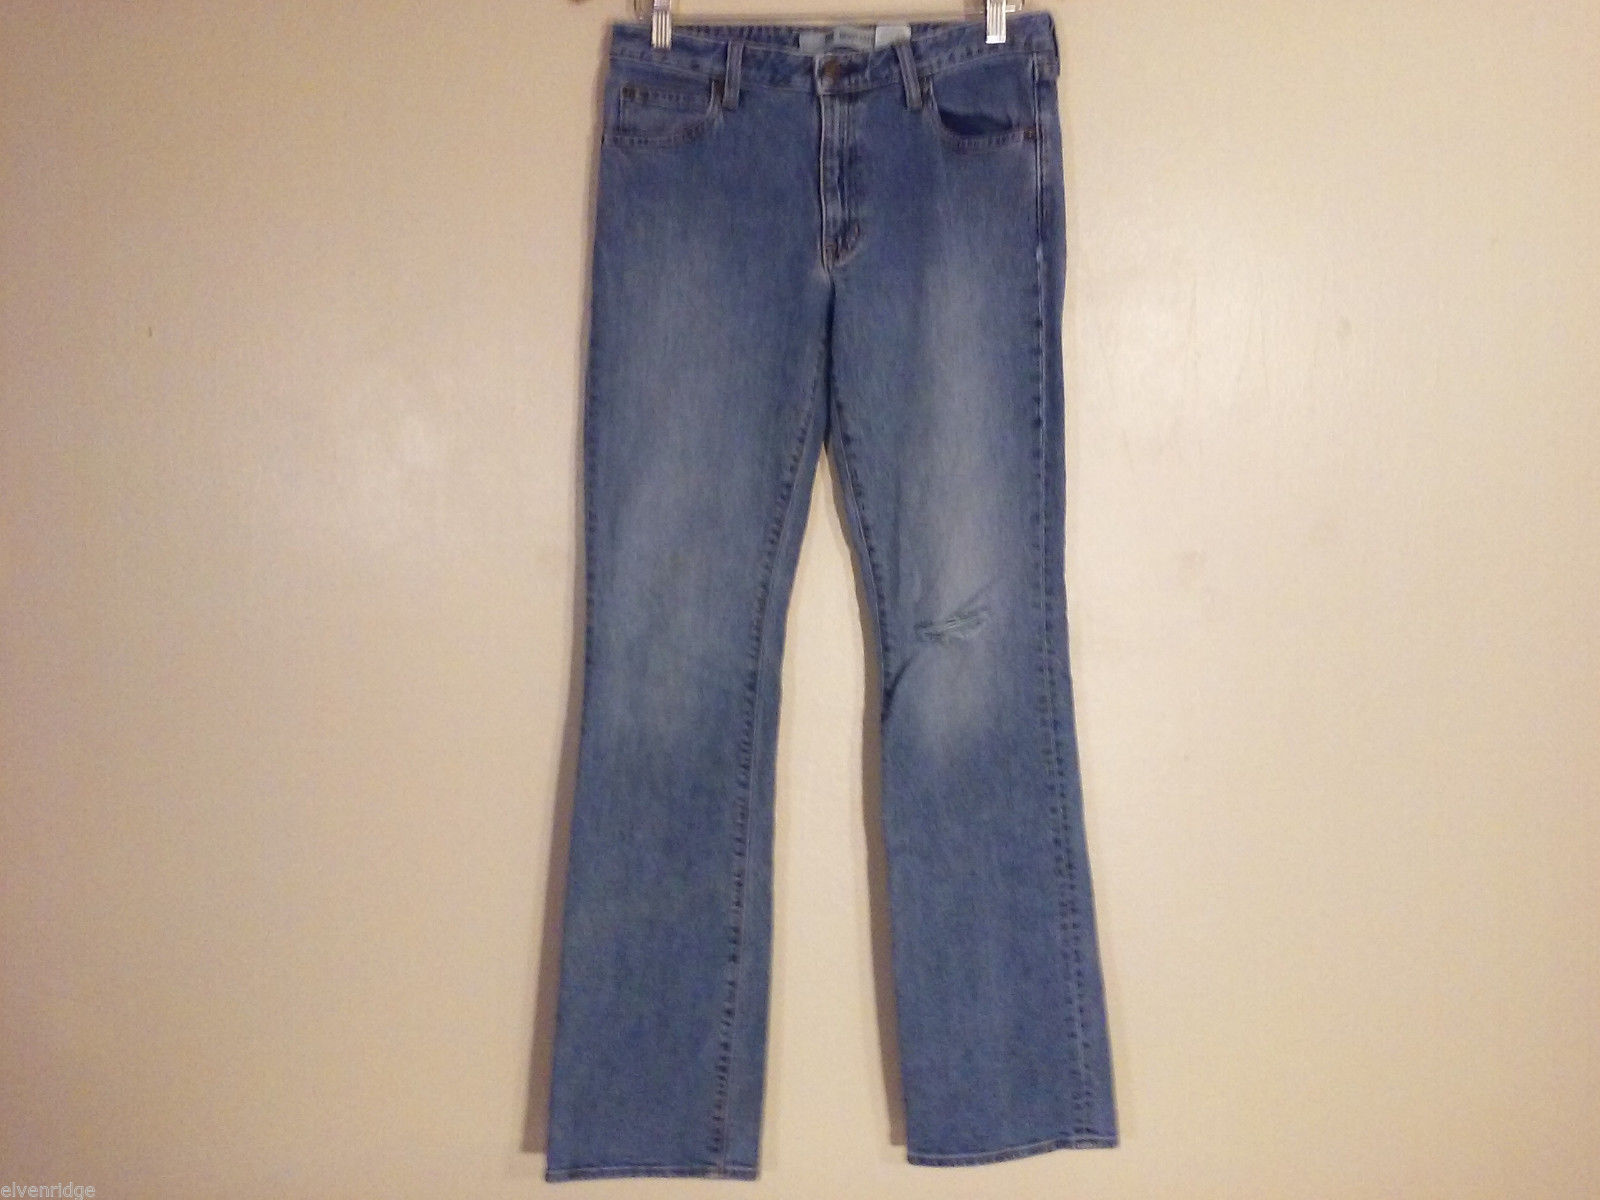 GAP Women's Size 8L Jeans Denim Boot Cut Stretch Distressed Knee Rip Detail